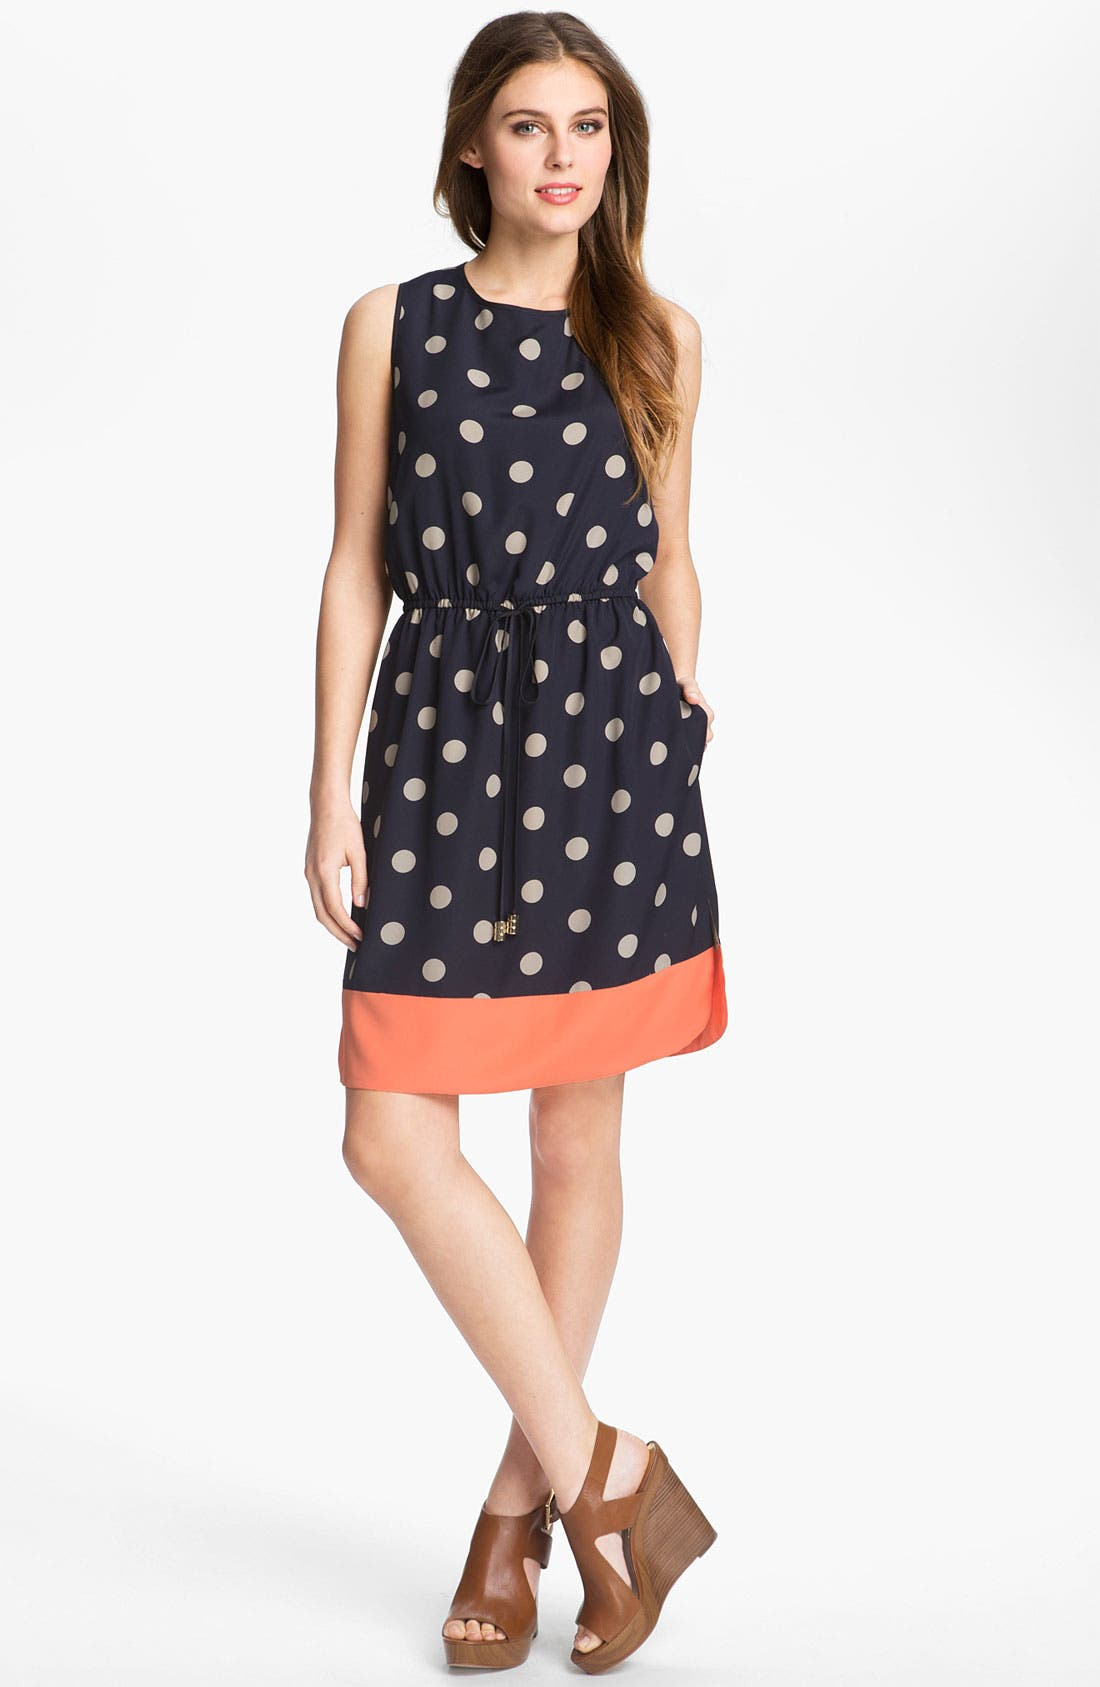 Main Image - Eliza J Sleeveless Polka Dot Dress